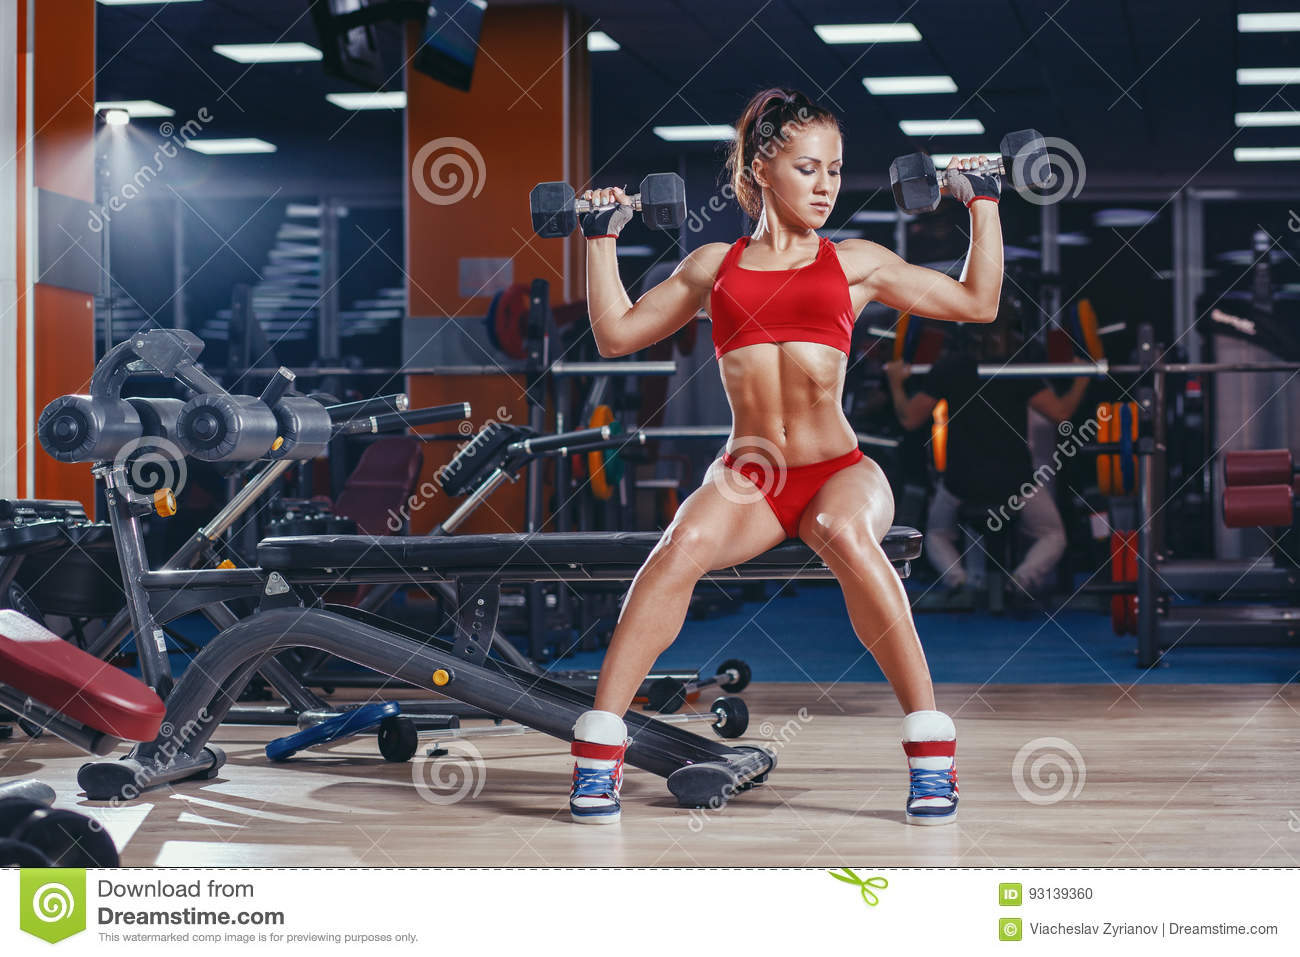 young athletics girl doing dumbbells press exercises sitting on bench in gym